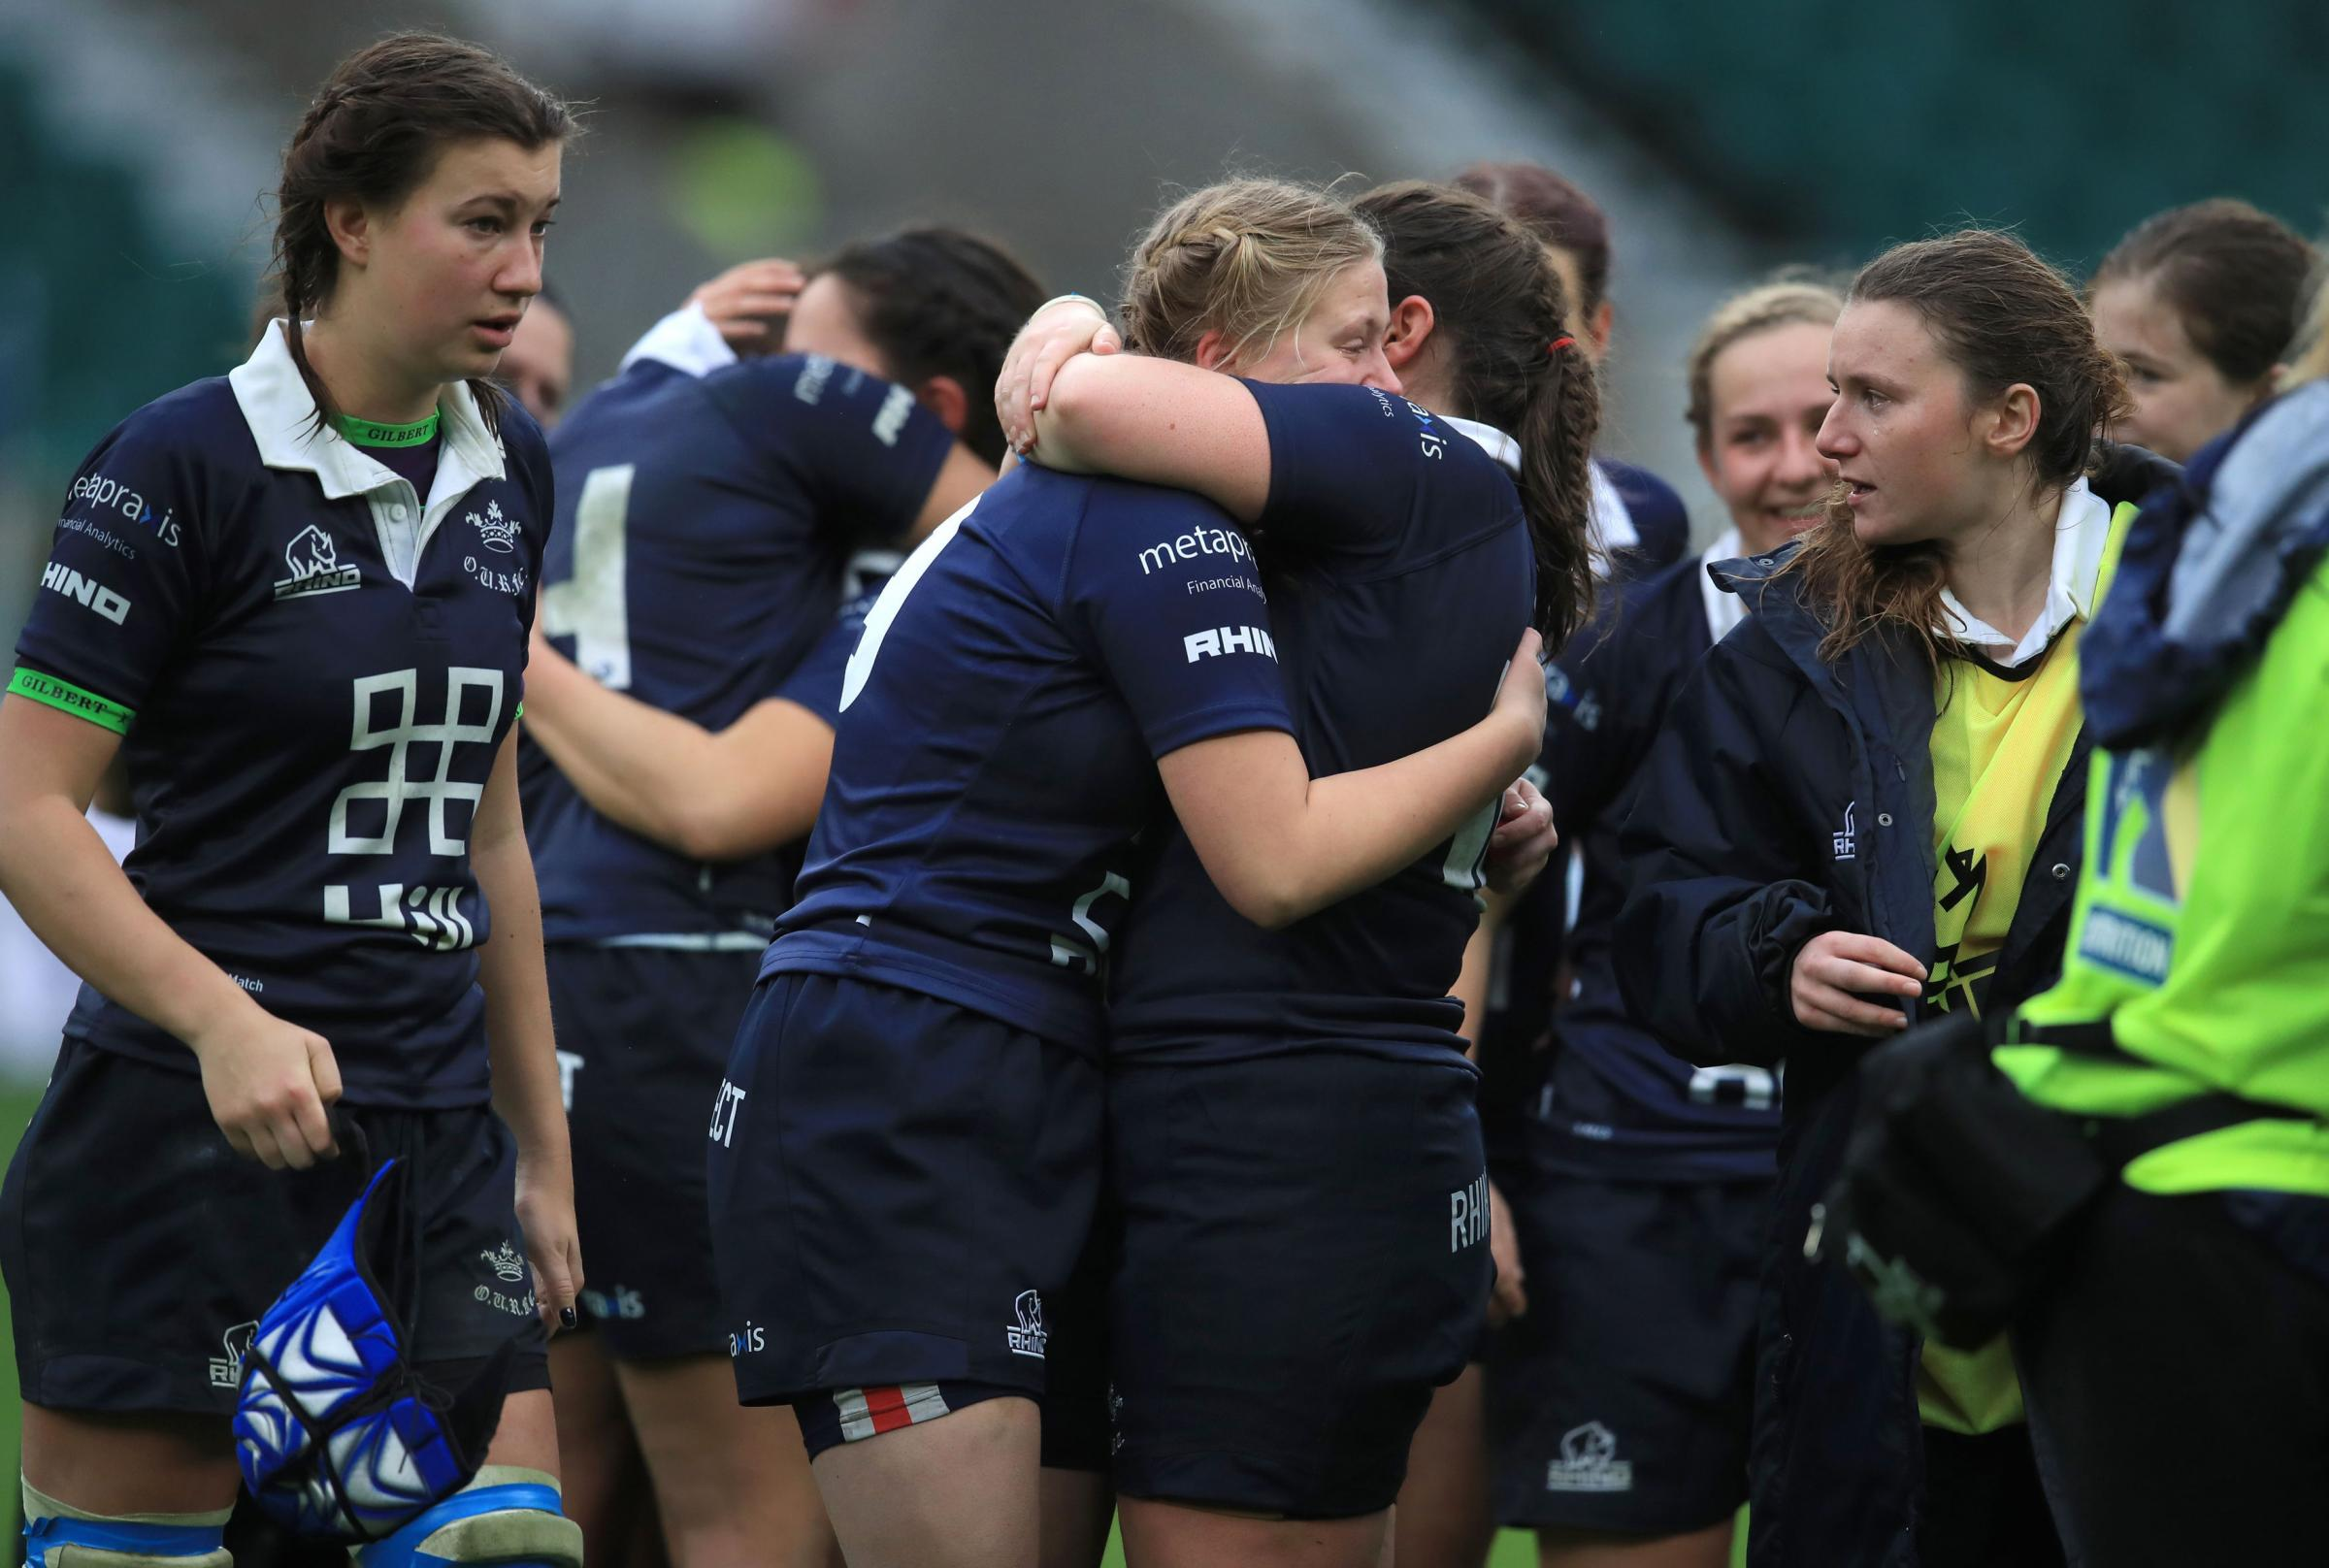 Oxford University's players console each other after a 24-0 defeat to Cambridge University the 31st Women's Varsity Match at Twickenham Picture: Mike Egerton/PA Wire